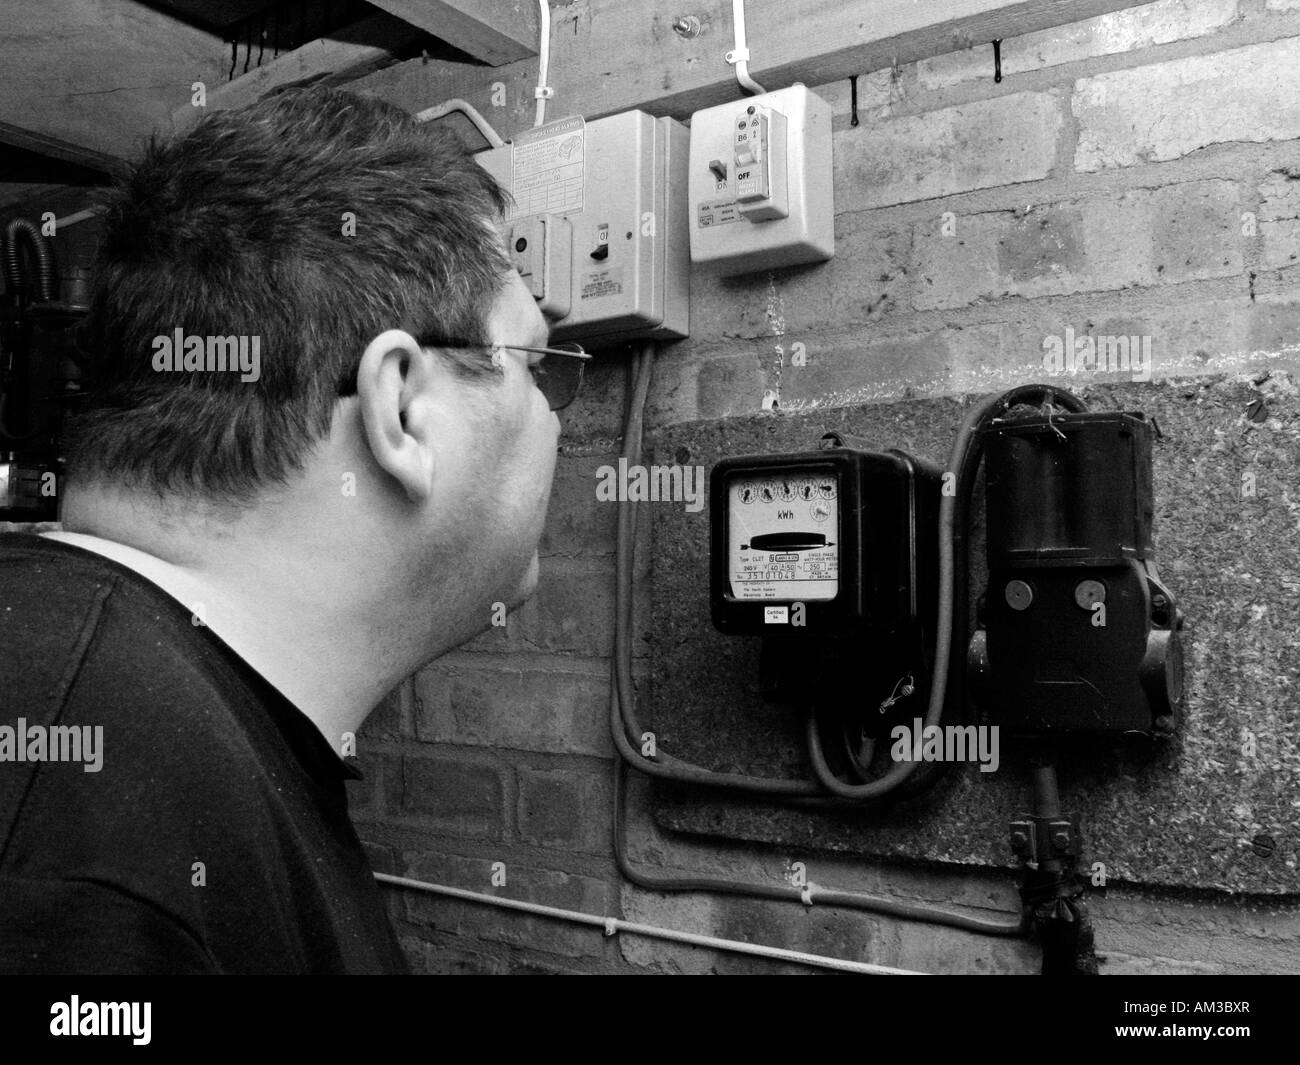 hight resolution of man reading and checking electric meter in garage